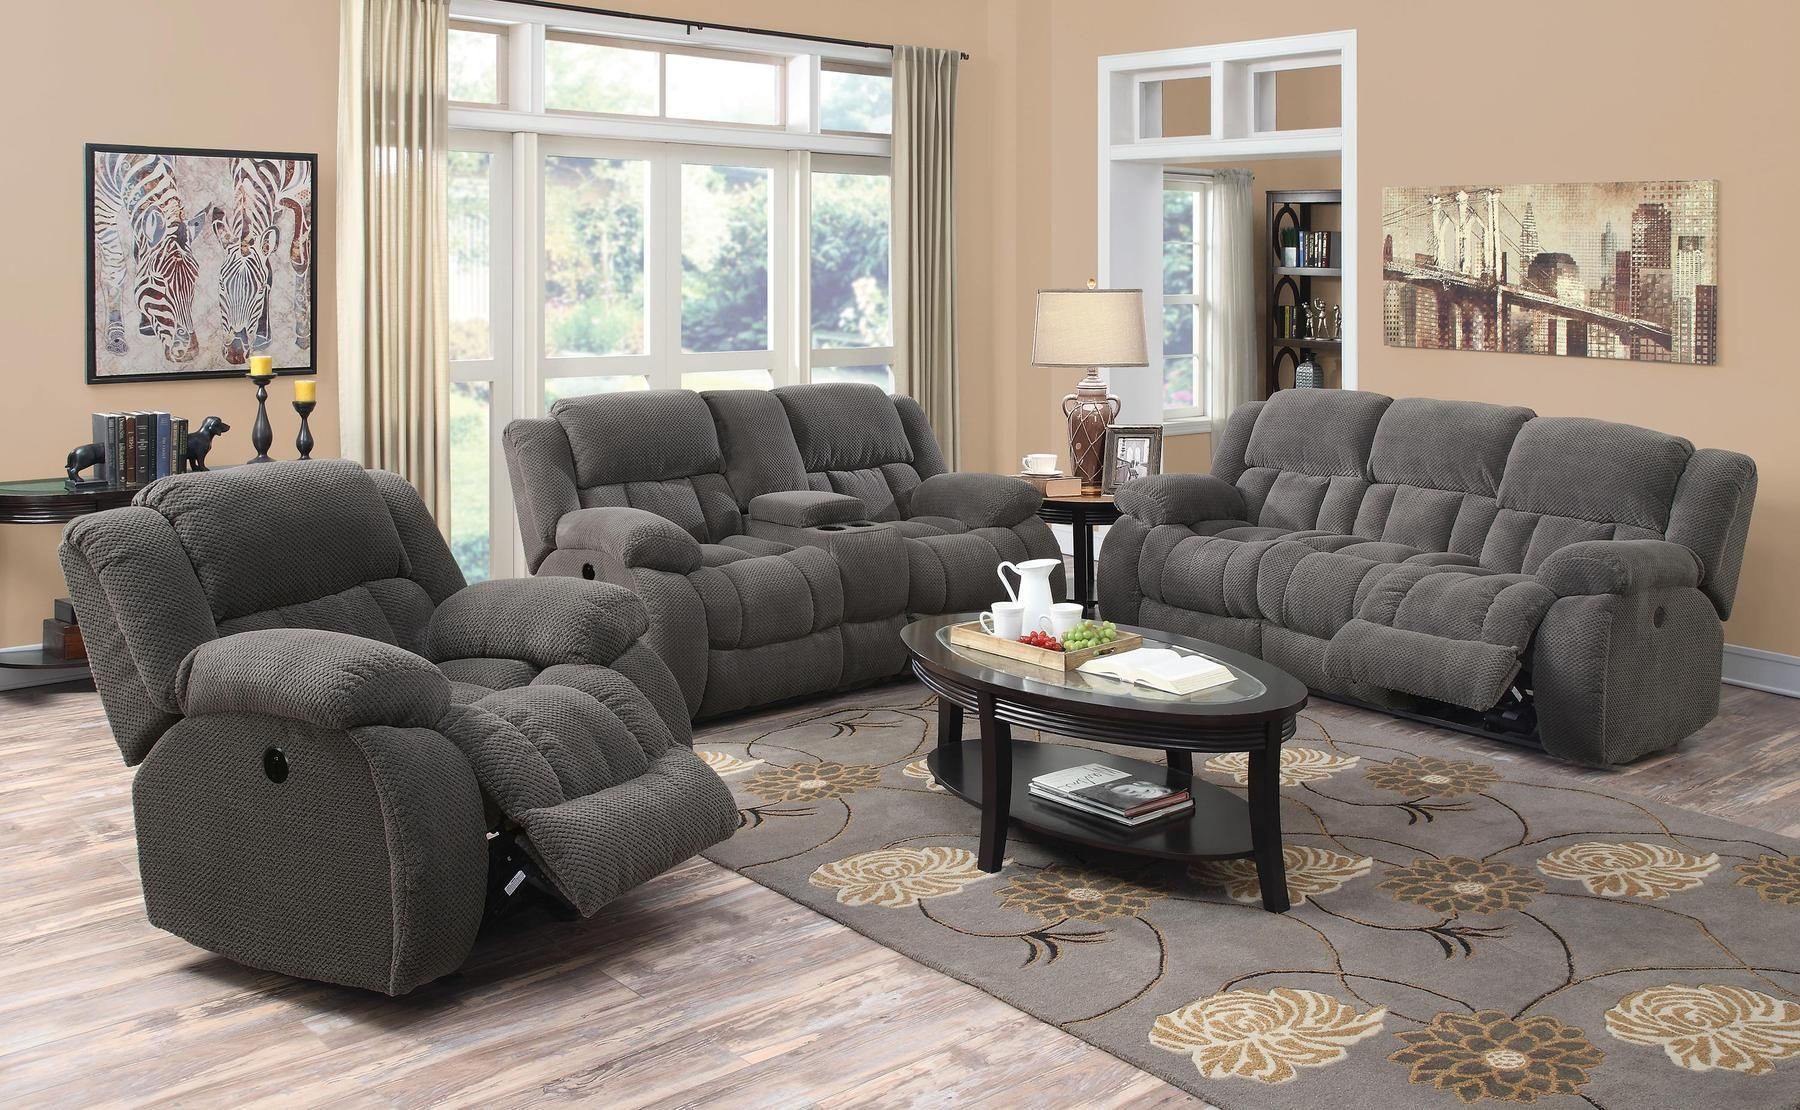 Best Weissman Gray Sofa Living Room Sets Cheap Living Room 400 x 300